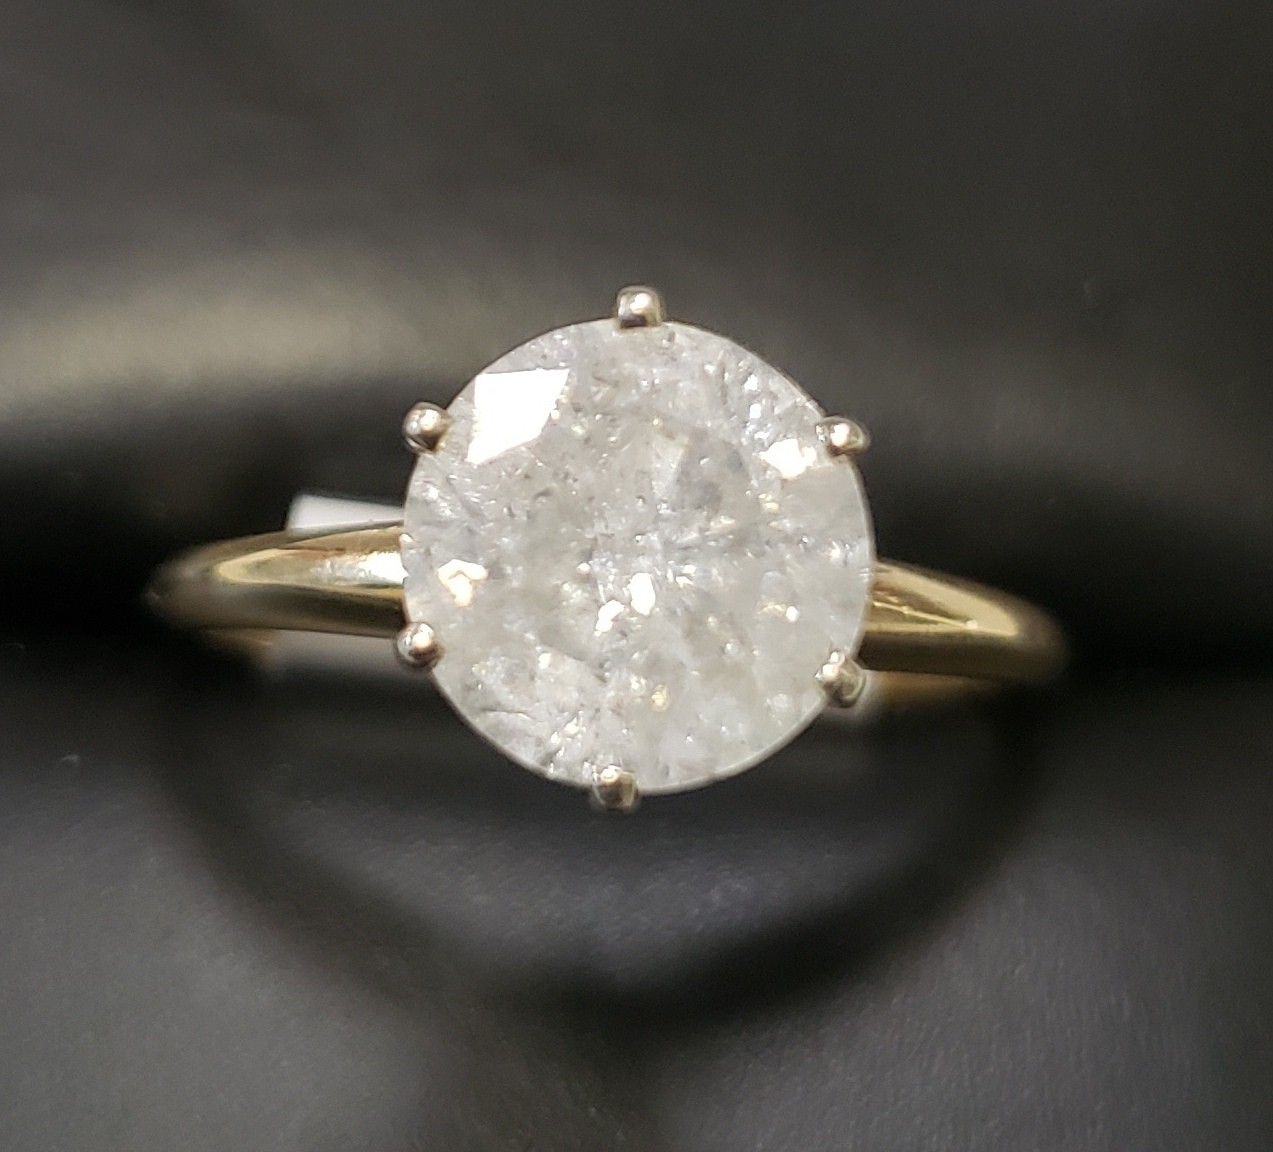 10KT SIZE 6.5 YELLOW GOLD 1-3/4 CTW ROUND SOLITAIRE DIAMOND RIND